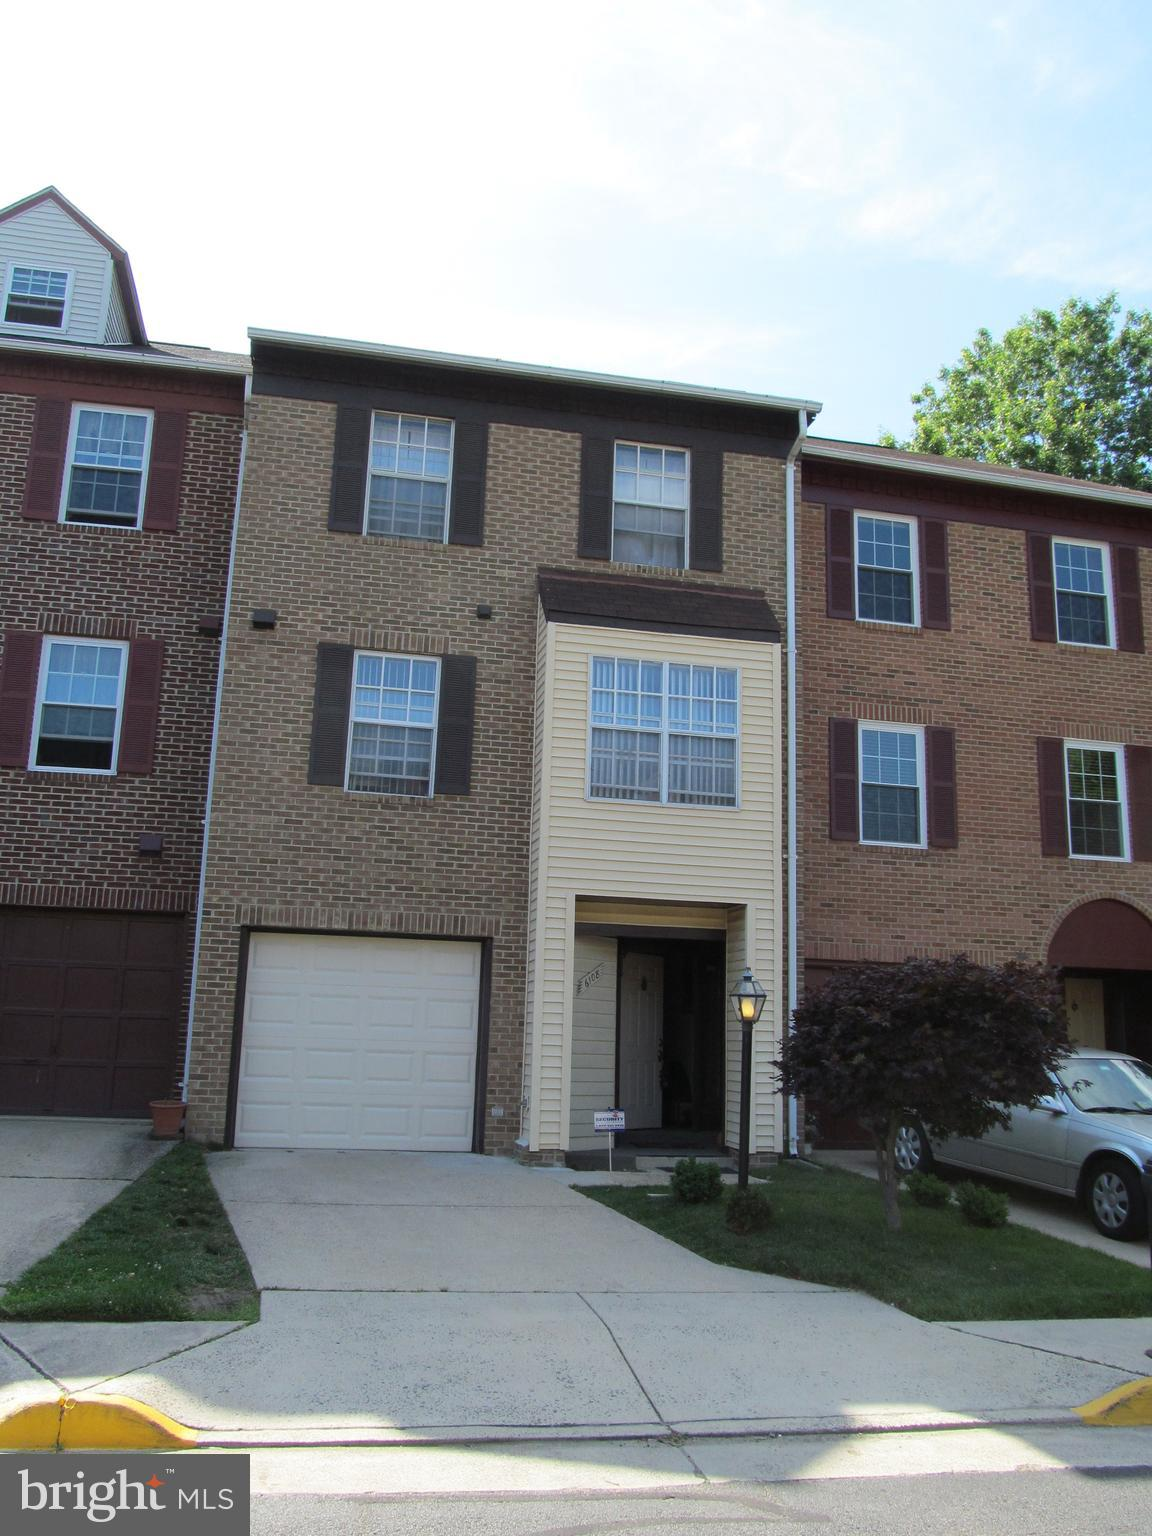 LOOK NO FURTHER !! Lovely townhouse with 1 car garage. Nice fenced in rear yard with deck. Kitchen has stainless steel appliances and wood burning fireplace in the living room. Less than one mile to 495 and Van Dorn Metro!